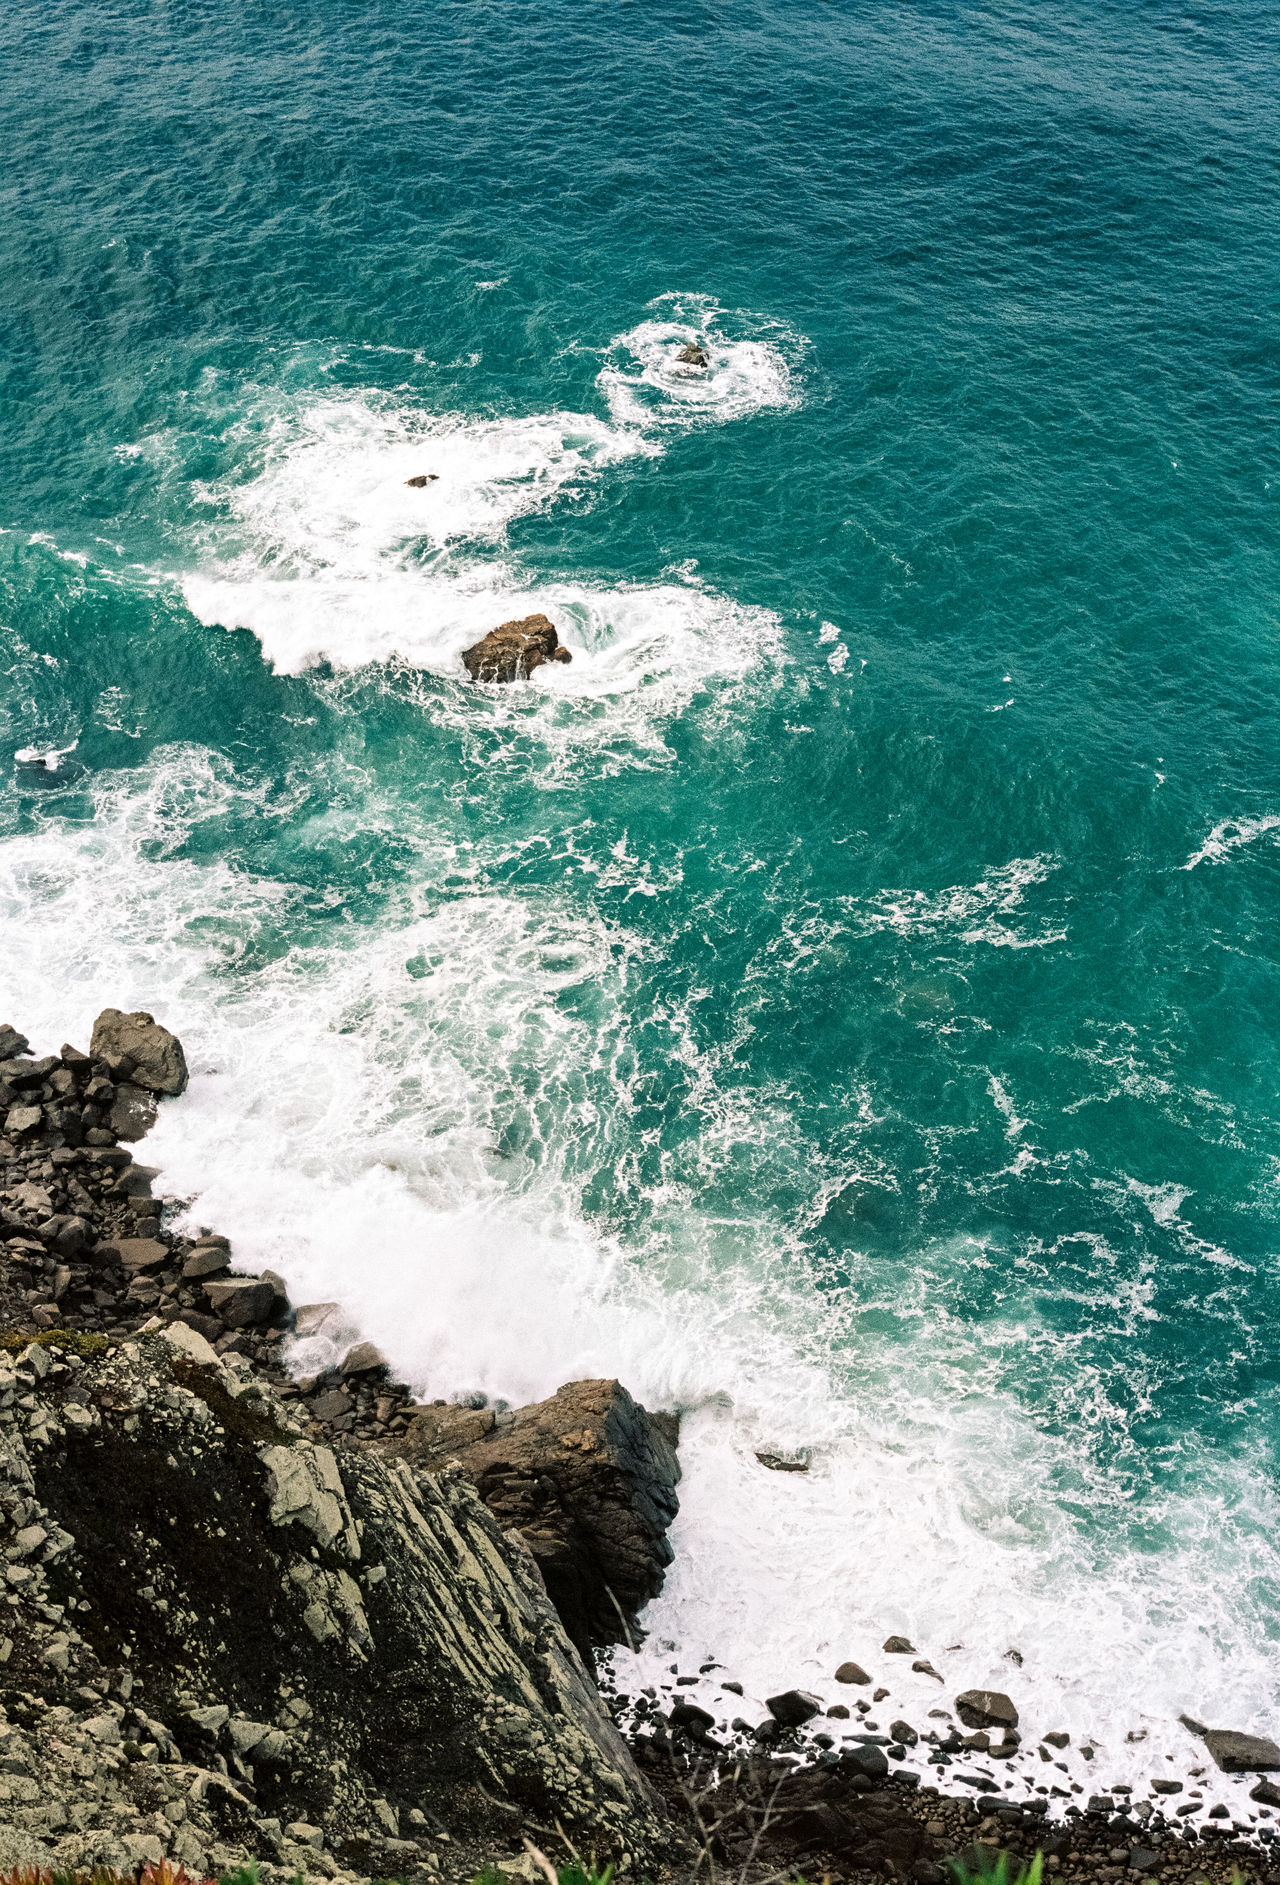 35mm Film Analogue Photography Beauty In Nature Film Photography Filmisnotdead Horizon Over Water Leica Motion Ocean Ocean View Outdoors Power In Nature Rippled Rock Scenics Sea Seascape Splashing Summer Vacation Vacations Voyage Water Waterfront Wave